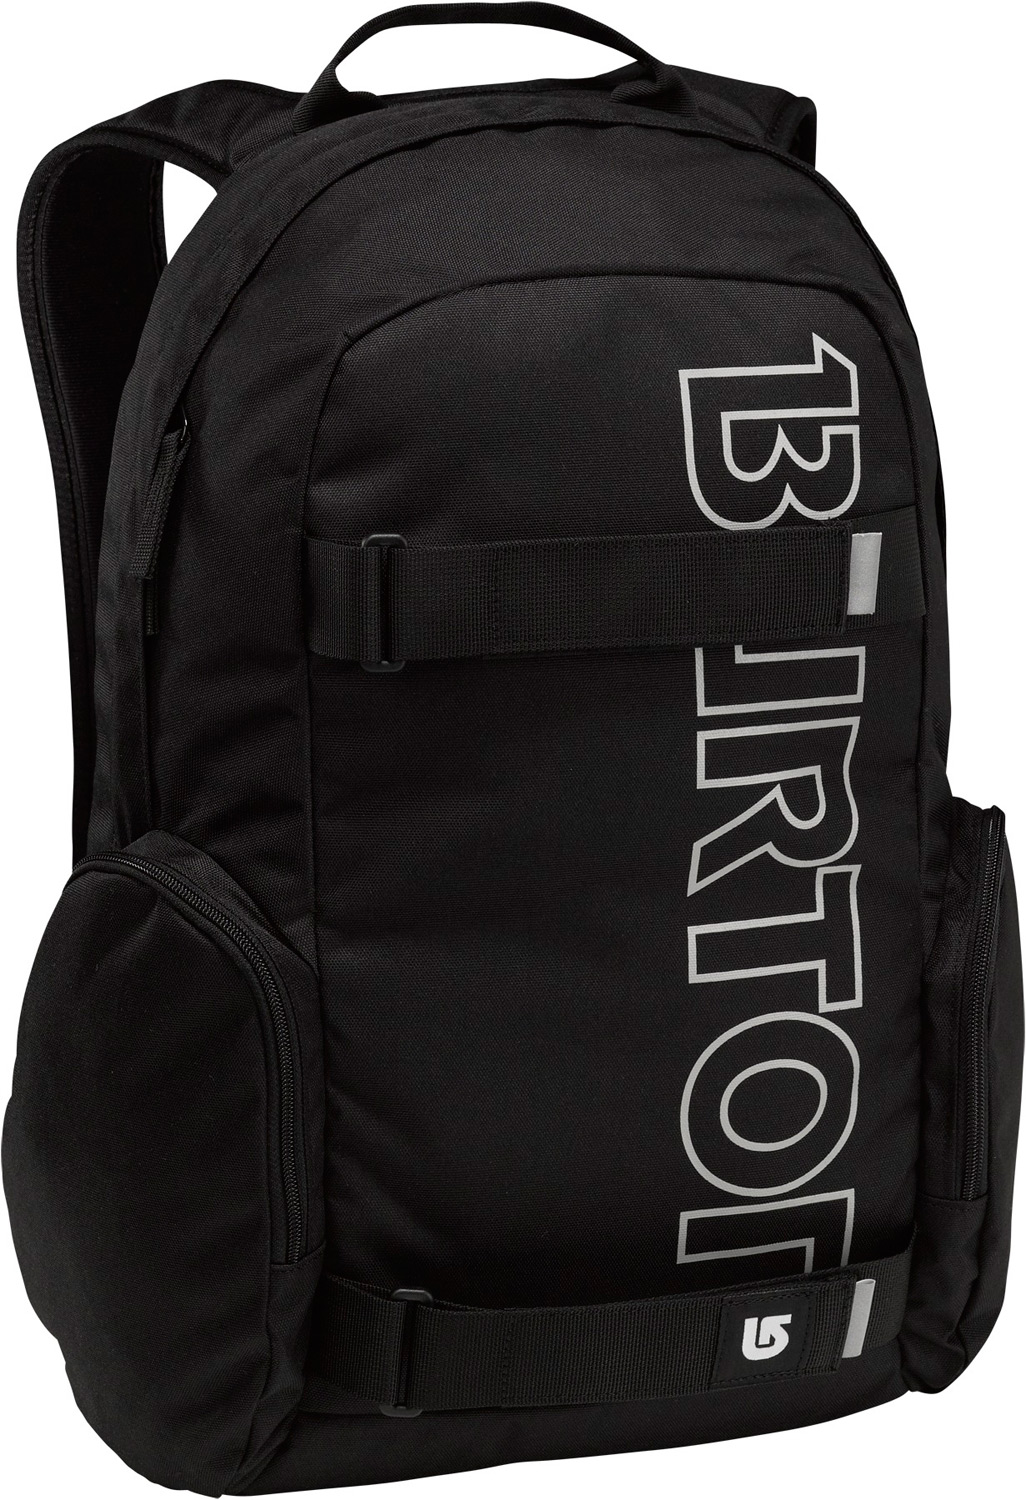 Snowboard Full featured skate pack with big time branding.Key Features of the Burton Emphasis SS Backpack: Fabrication: 600D Polyester / 300D Polyester Dobby Padded Laptop Pocket [11.5 in. x 10 in. x 1.5 in.] [29cm x 26cm x 4cm] Vertical Skate Carry Cush Ergonomic Shoulder Harness with Adjustable Sternum Strap Fleece-Lined Internal Pocket - $27.96